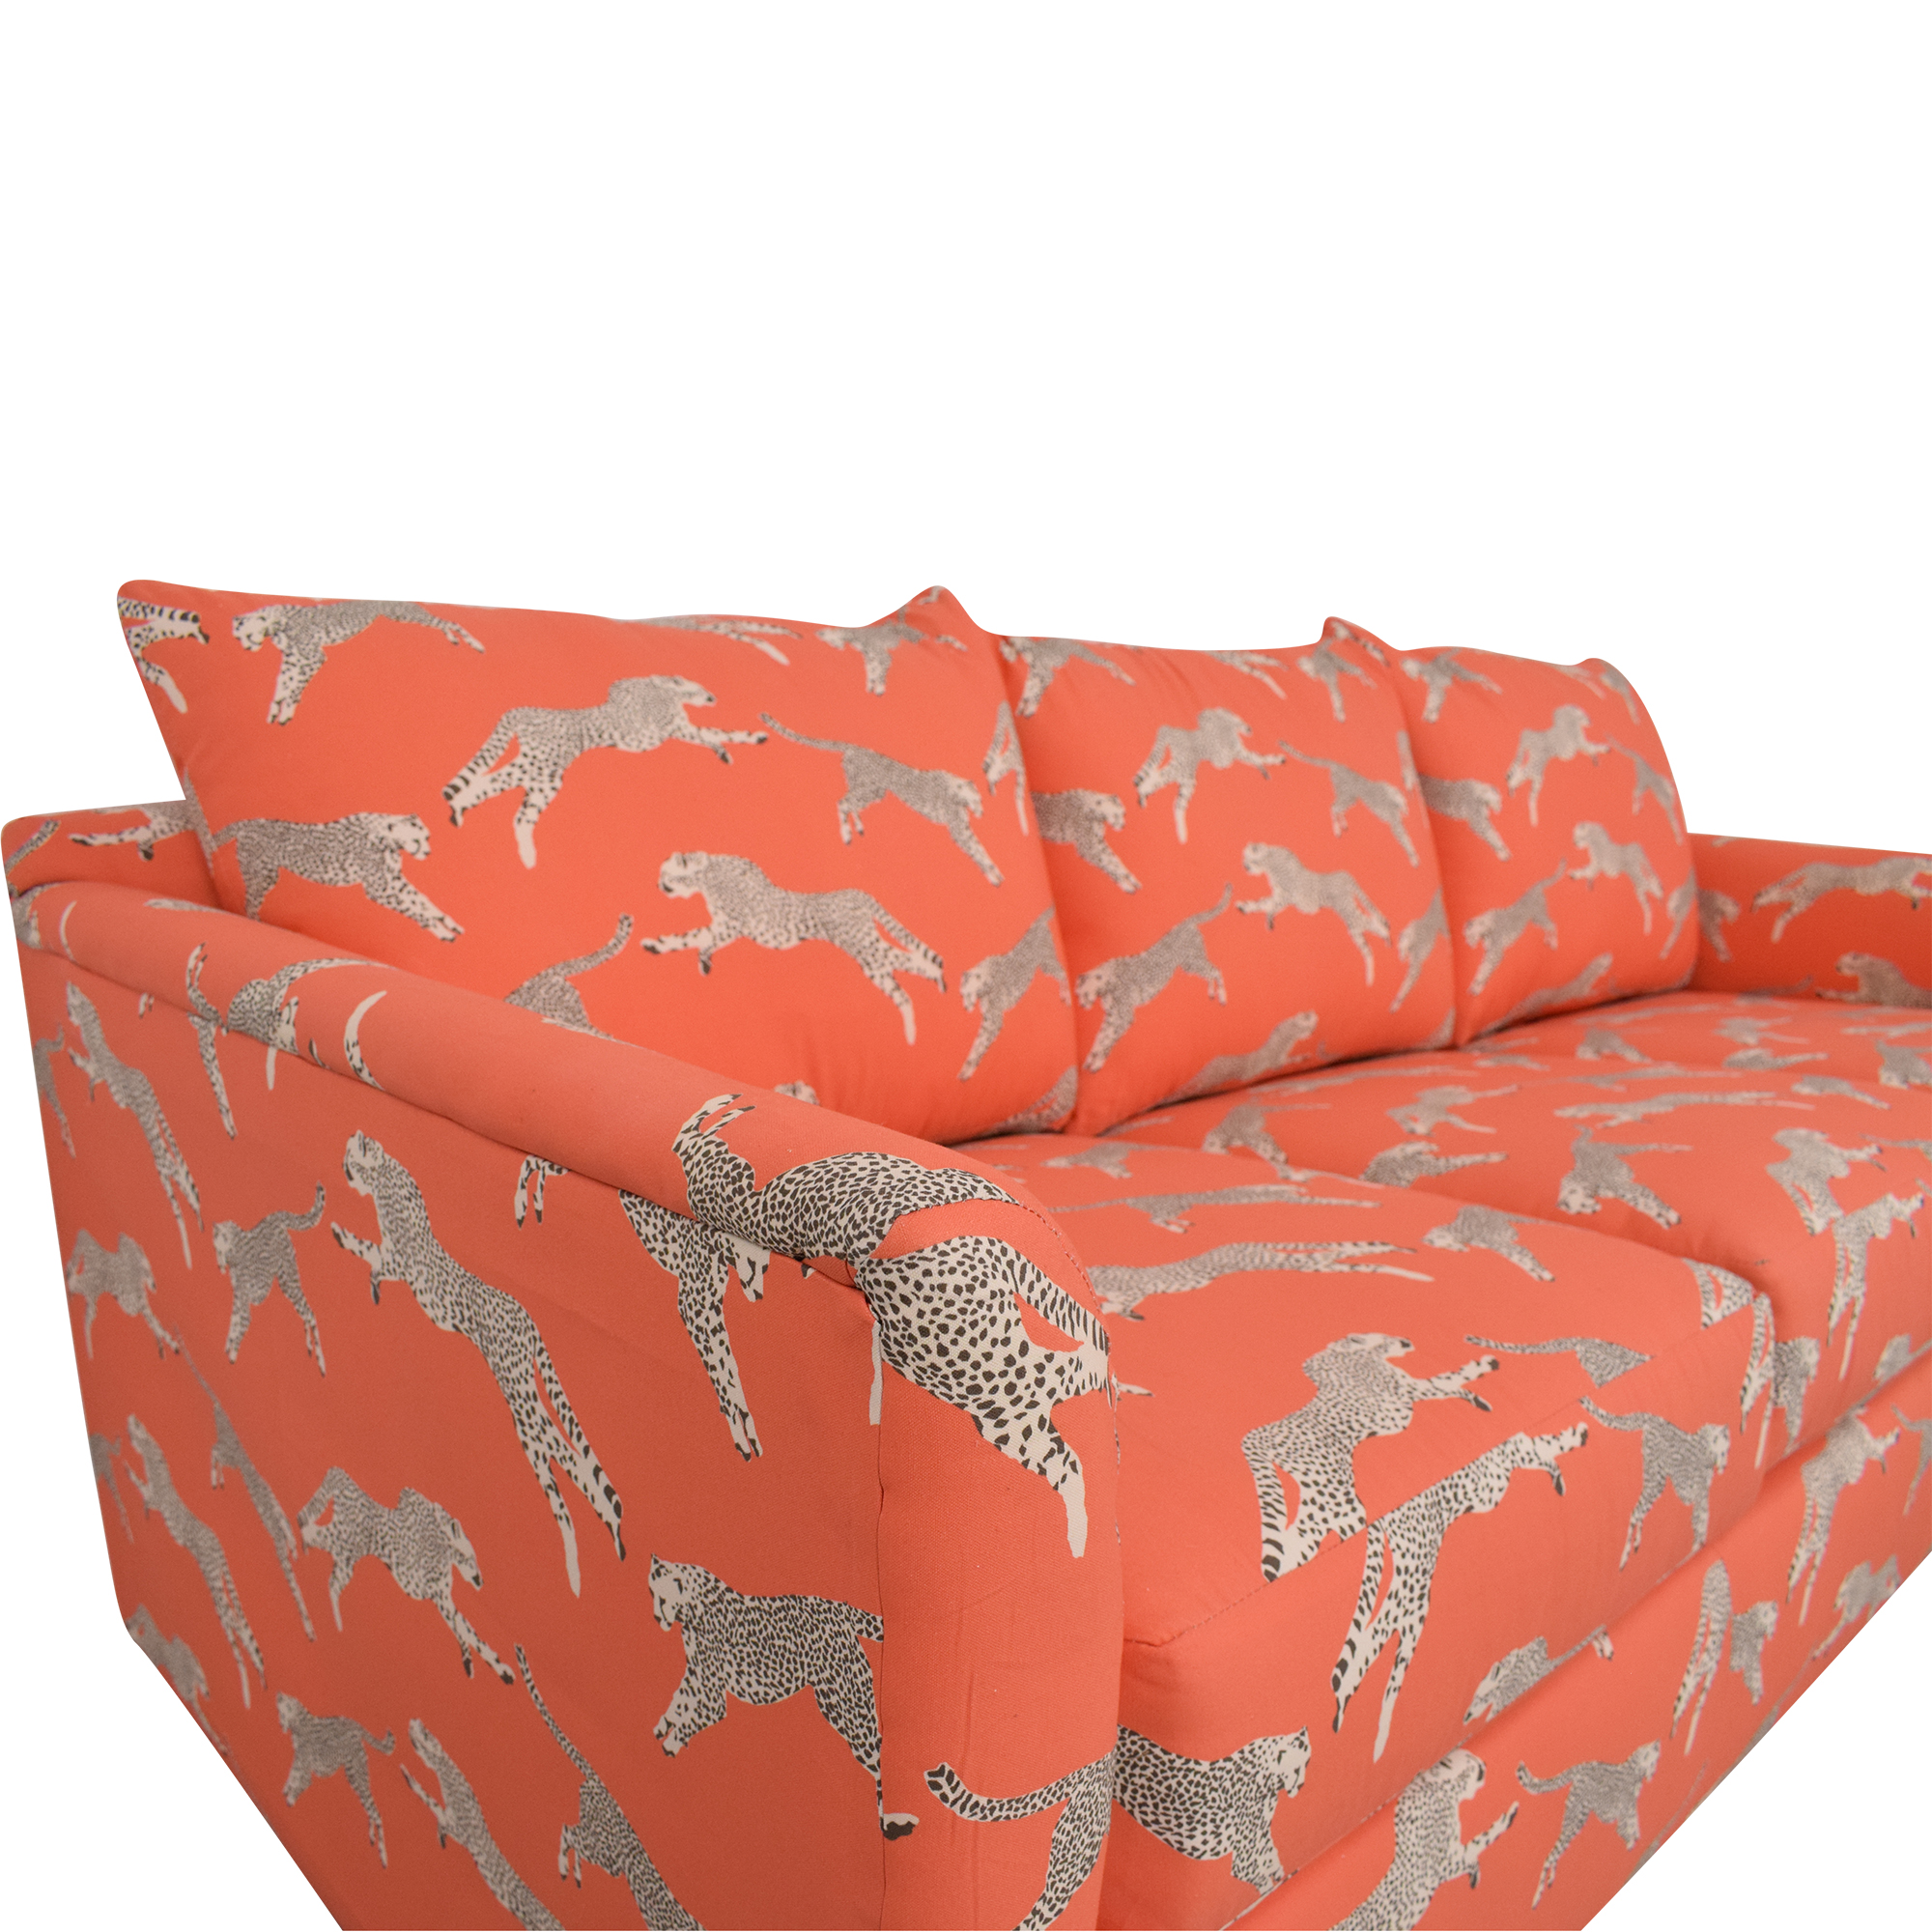 The Inside The Inside Tailored Sleeper Sofa in Coral Zebra by Scalamandré dimensions